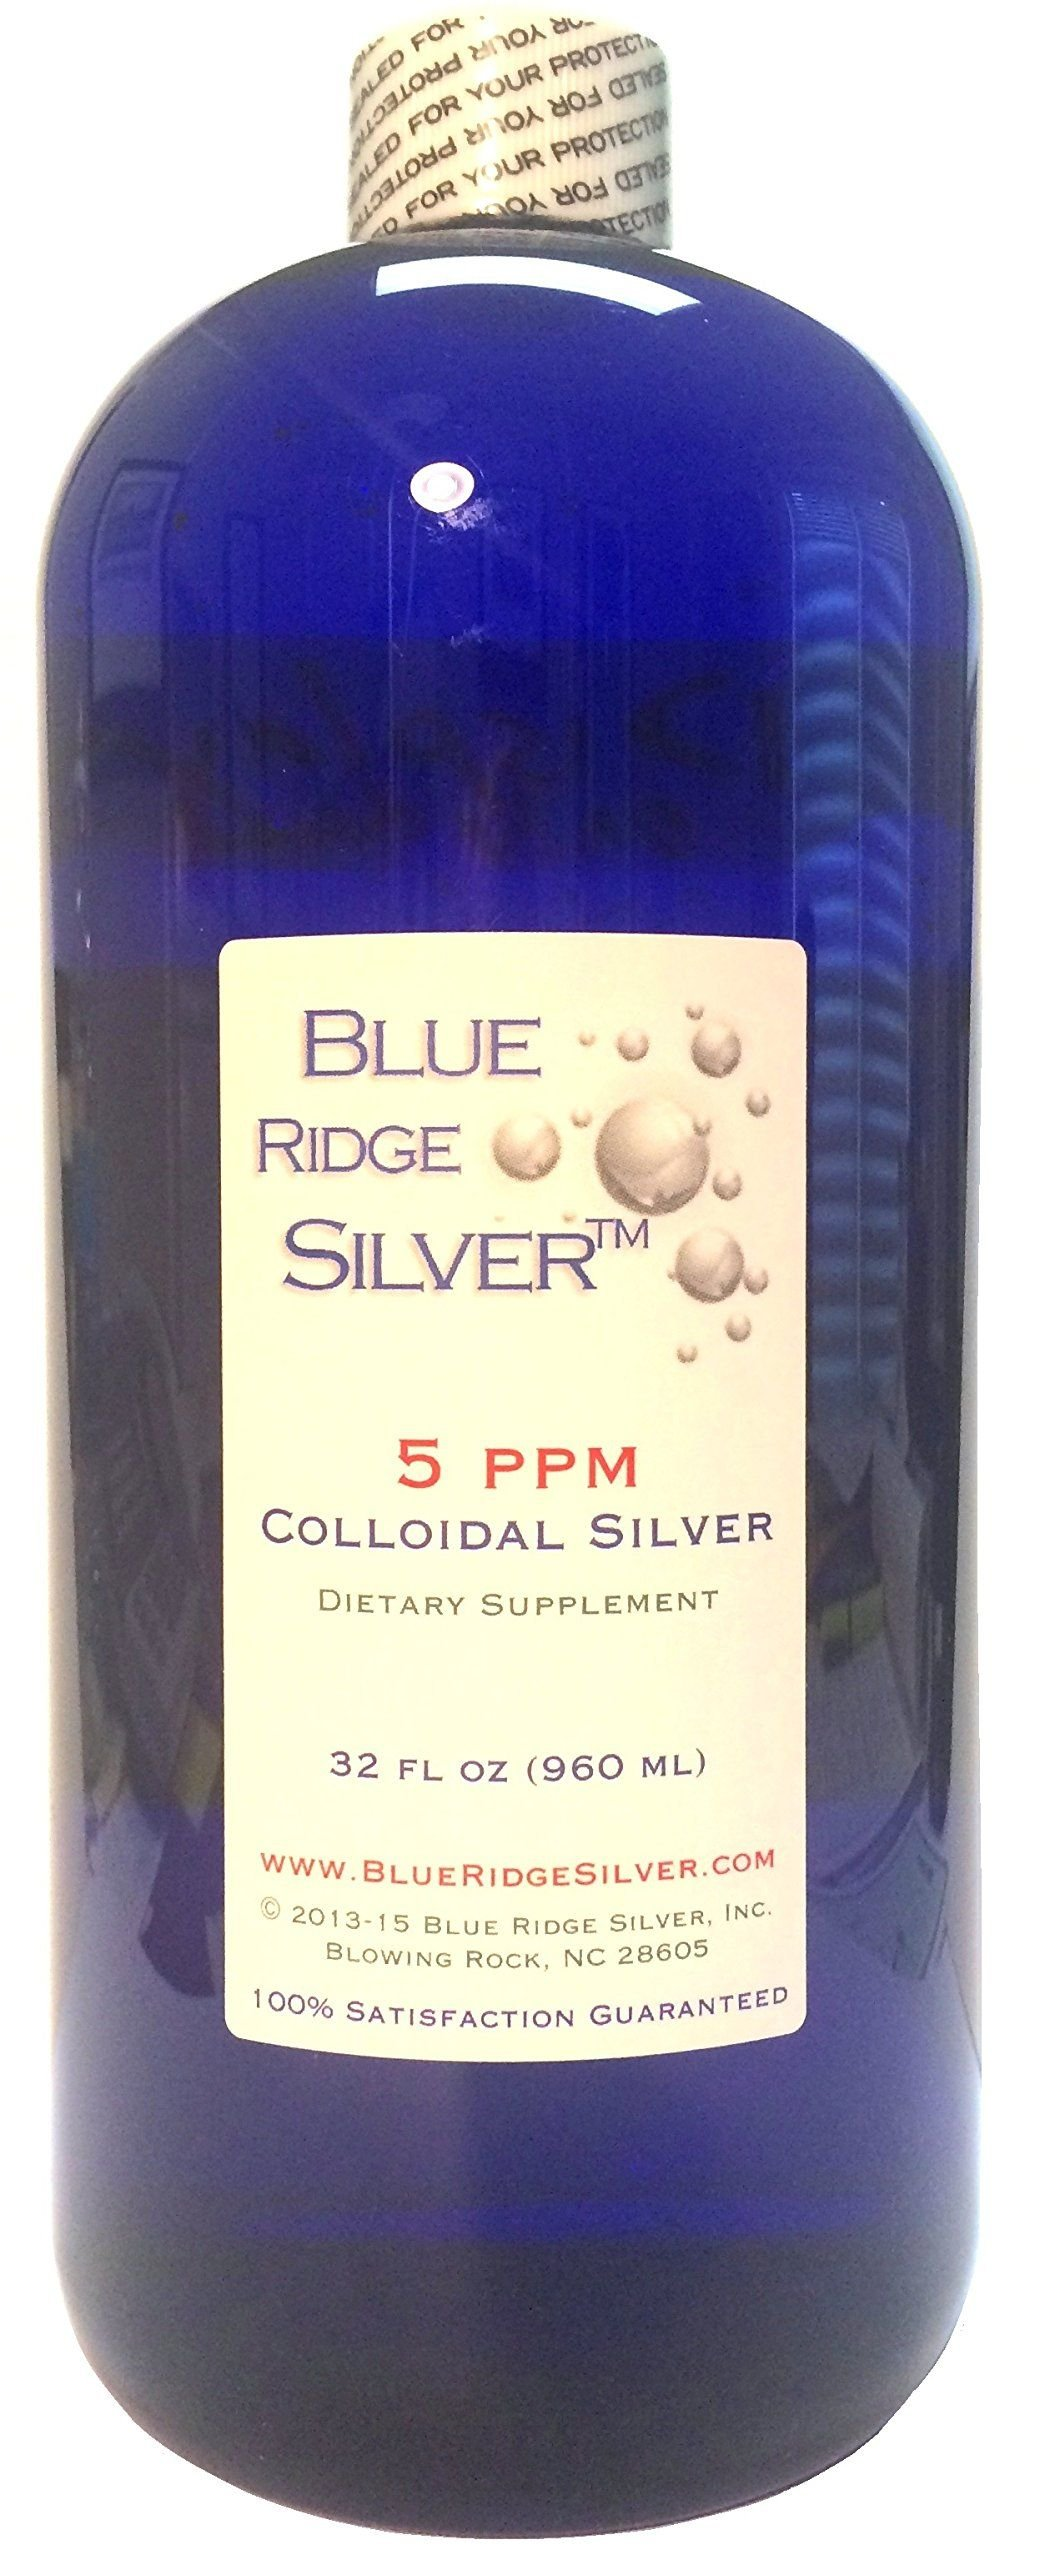 Amazon.com: Blue Ridge Silver 5 ppm 32 oz Colloidal Silver: Health & Personal Care